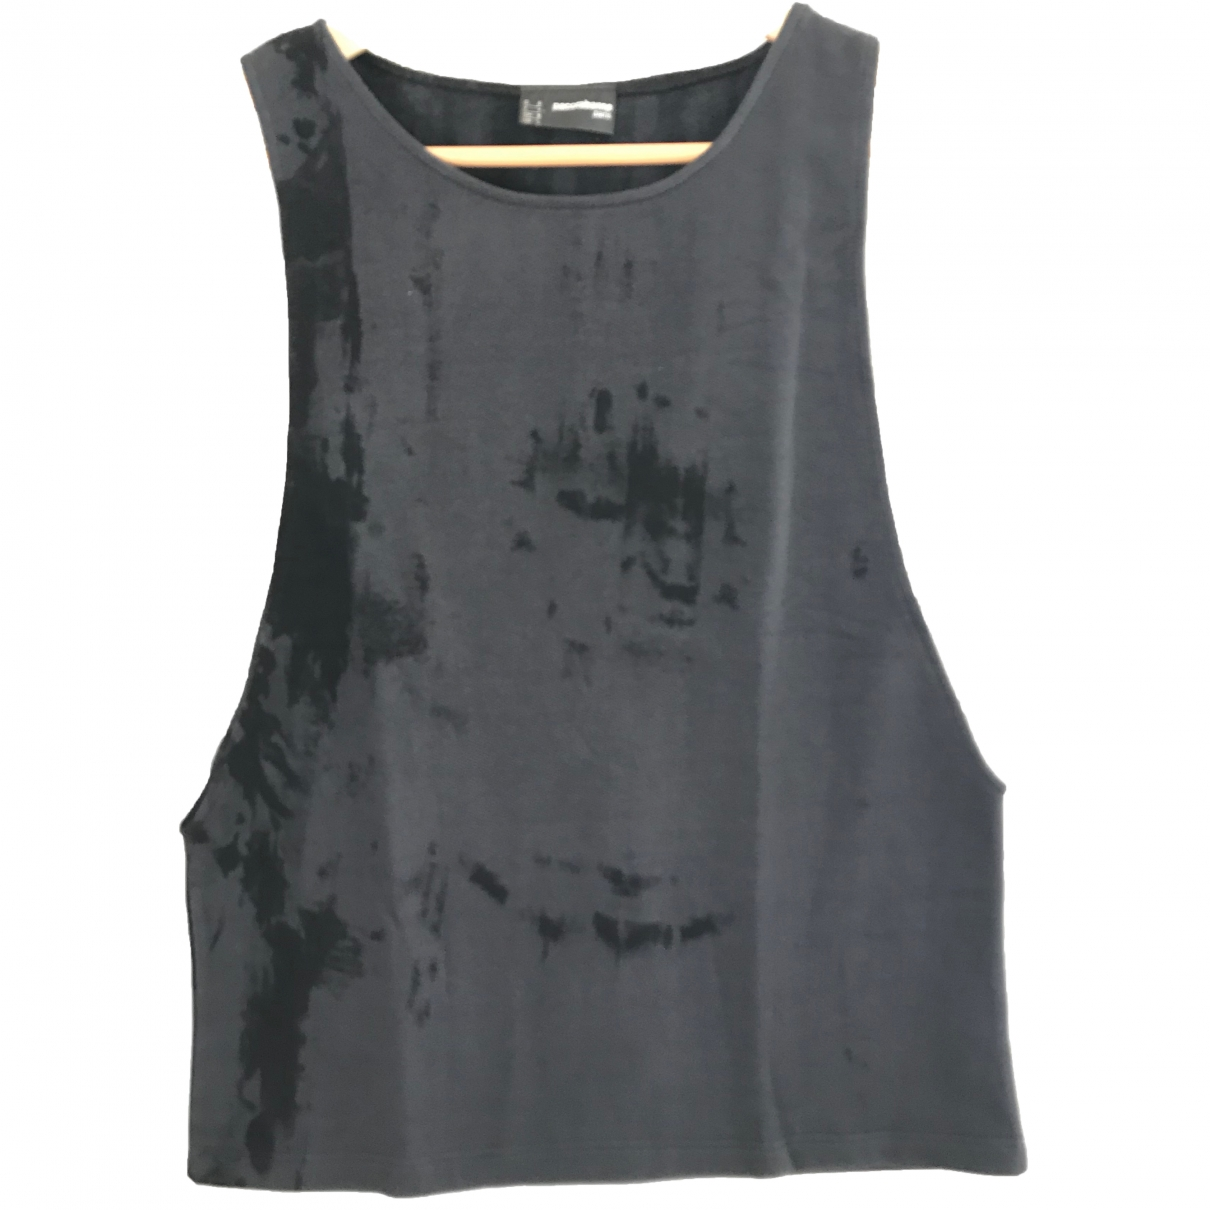 Paco Rabanne \N Anthracite Cotton  top for Women L